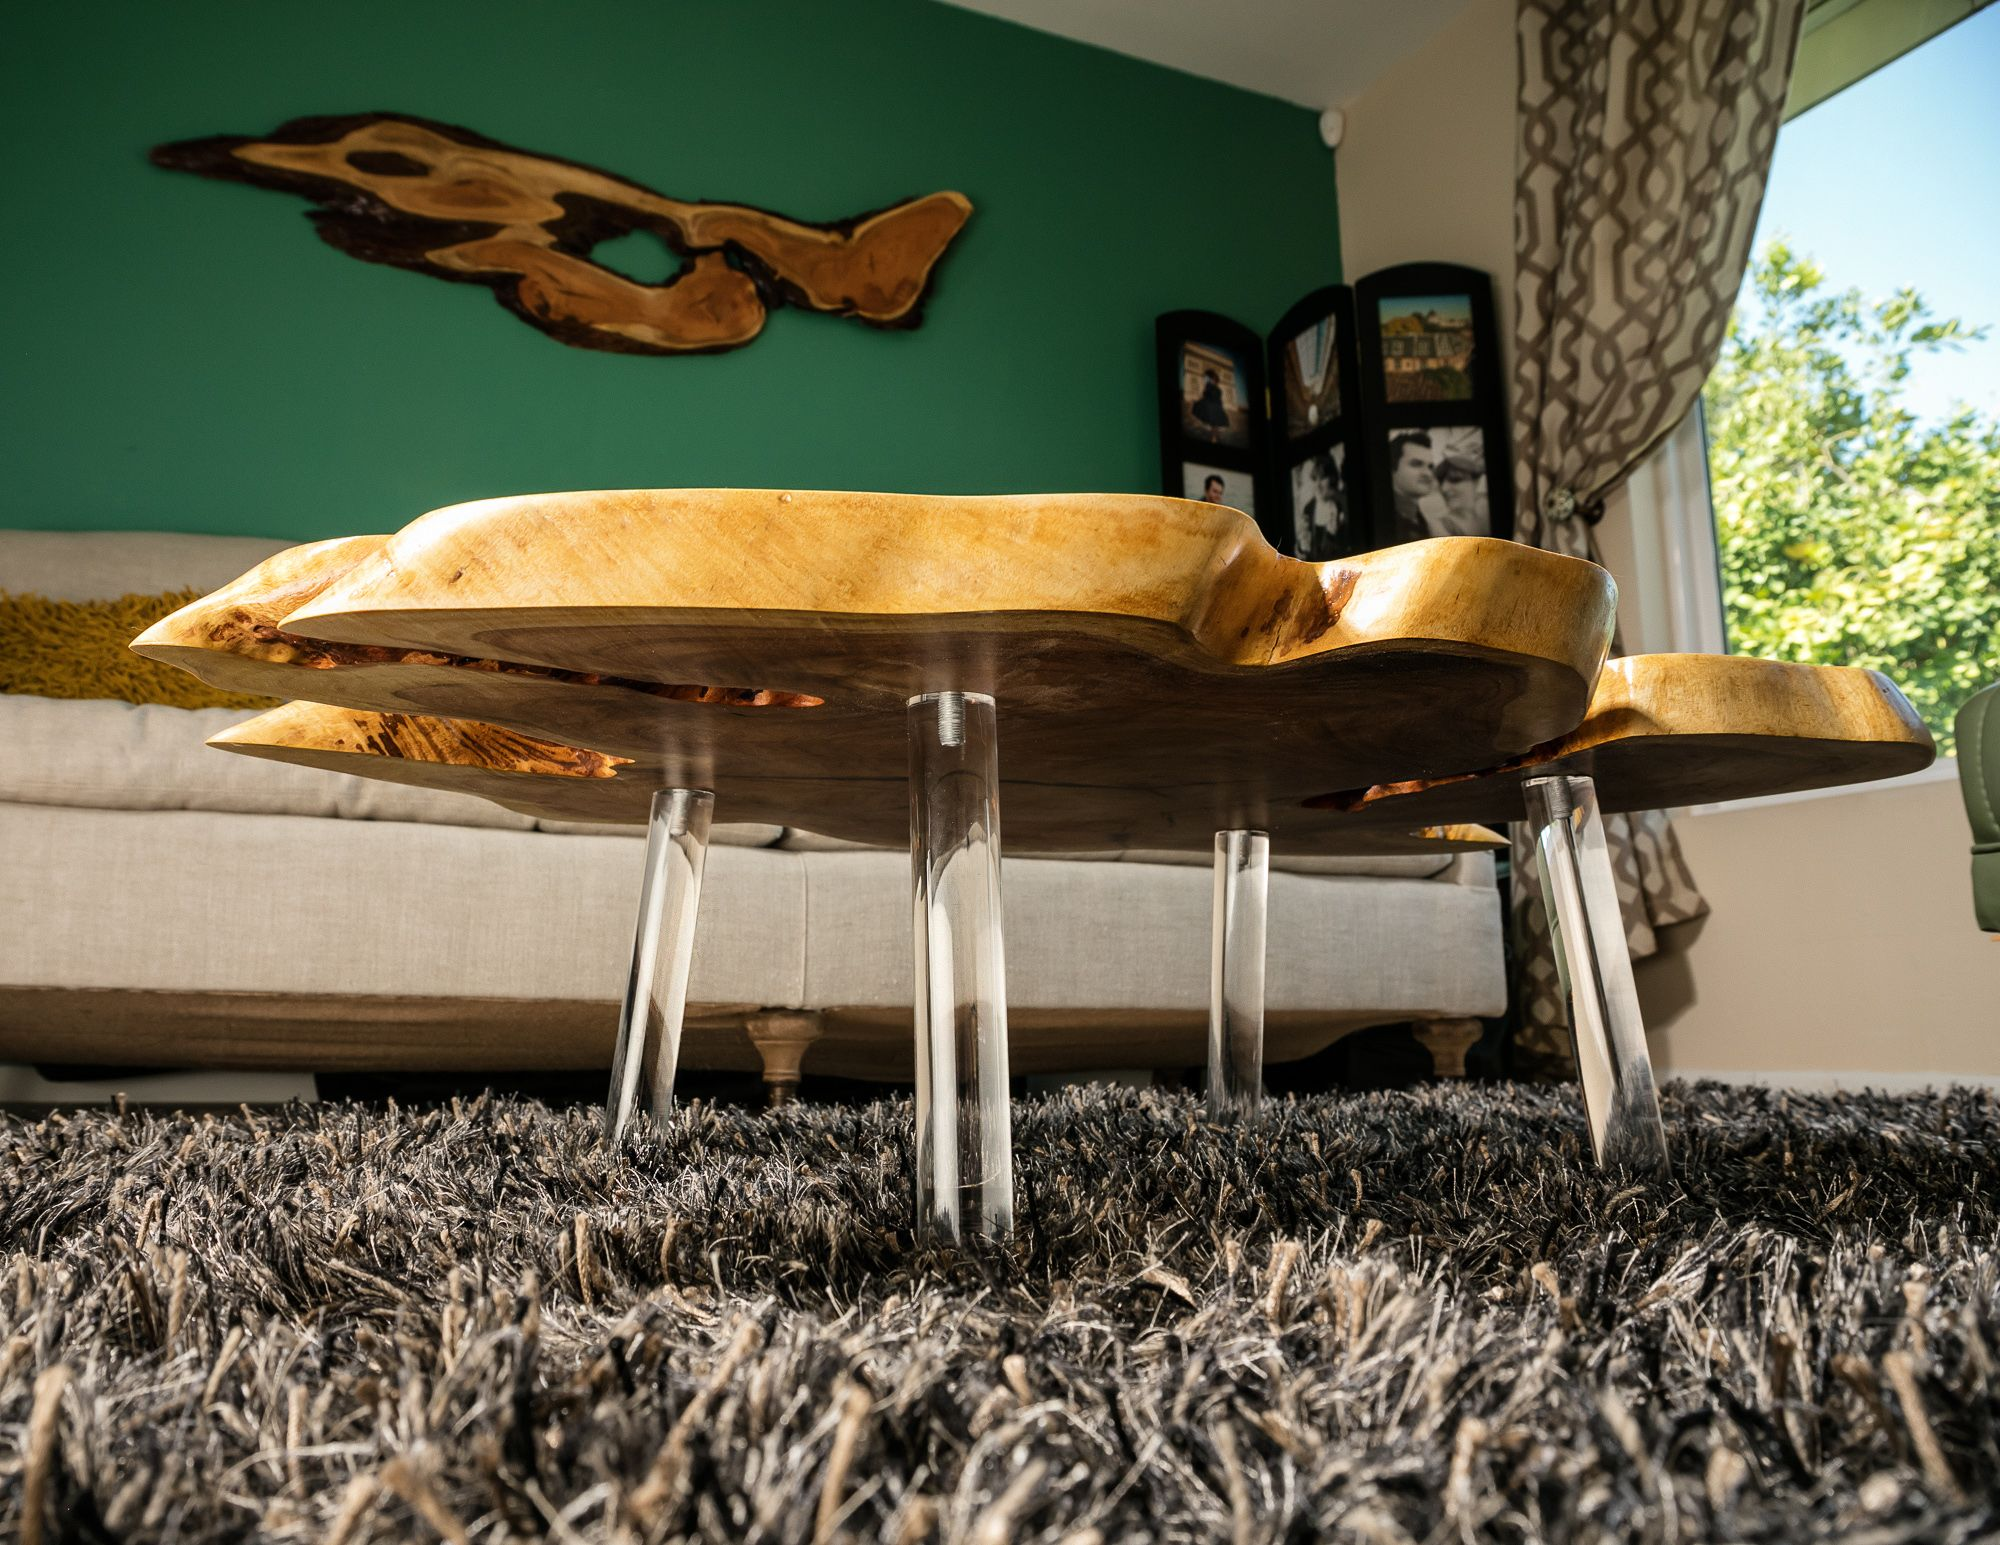 42 Mesquite Live Edge End Grain Floating Coffee Table With